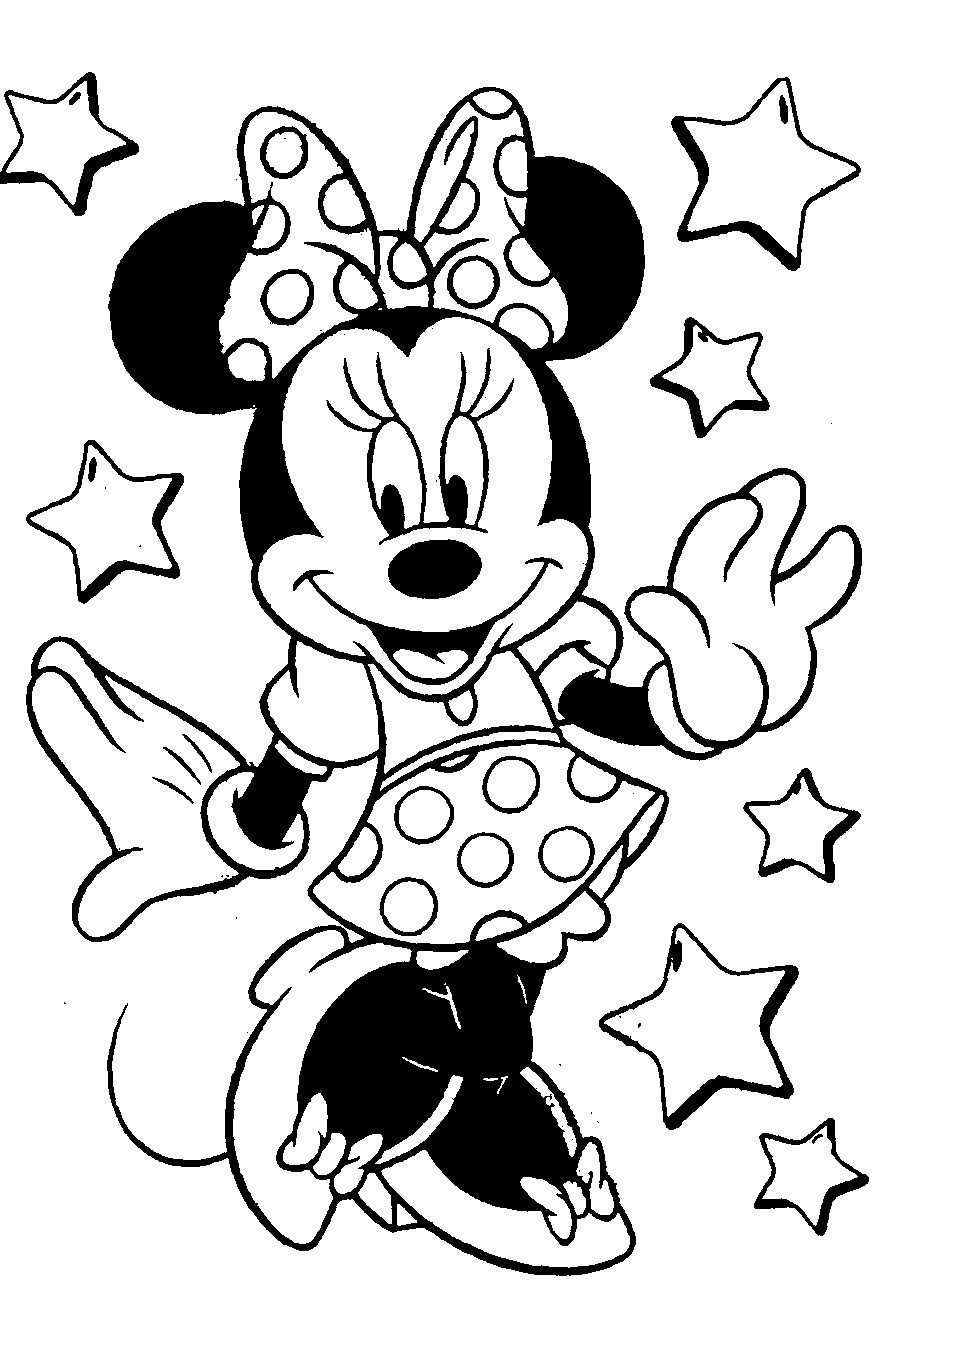 Minnie Mouse Coloring Pages Minnie Mouse Coloring Pages For Kids Printable Thanhhoacar Entitlementtrap Com Minnie Mouse Coloring Pages Free Disney Coloring Pages Mickey Mouse Coloring Pages